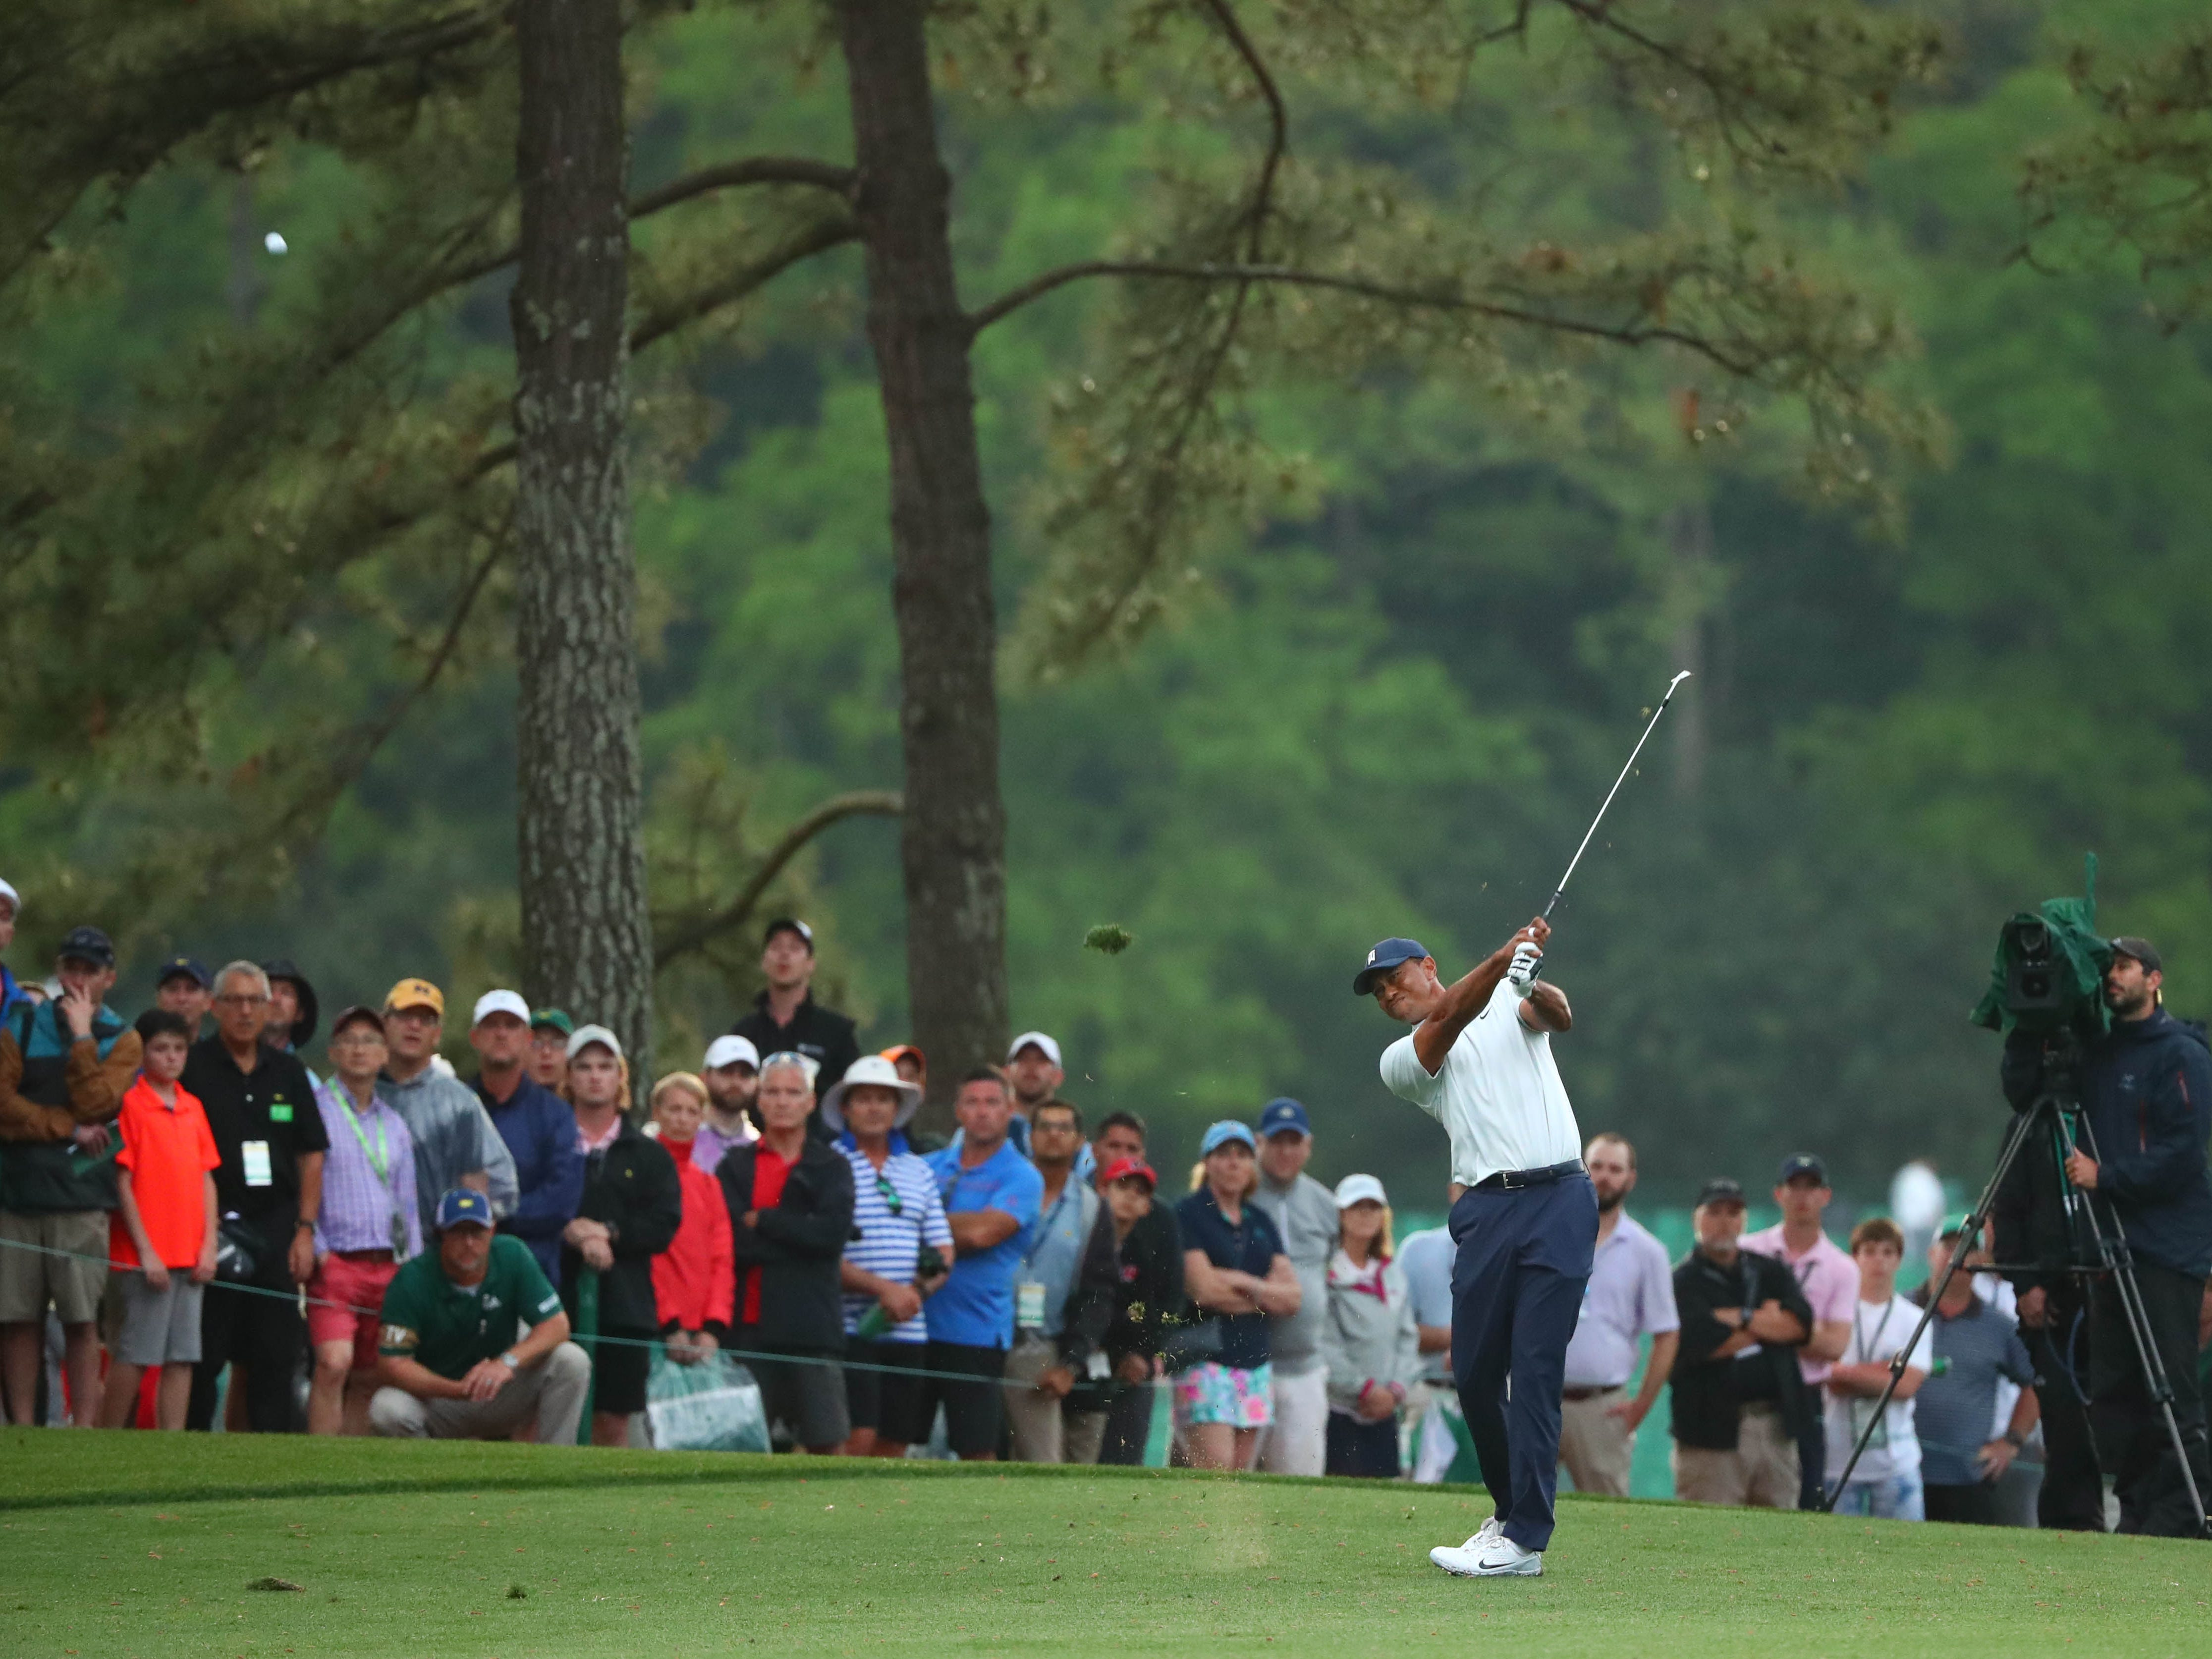 Apr 12, 2019; Augusta, GA, USA; Tiger Woods hits from the fairway on the 17th hole during the second round of The Masters golf tournament at Augusta National Golf Club. Mandatory Credit: Rob Schumacher-USA TODAY Sports